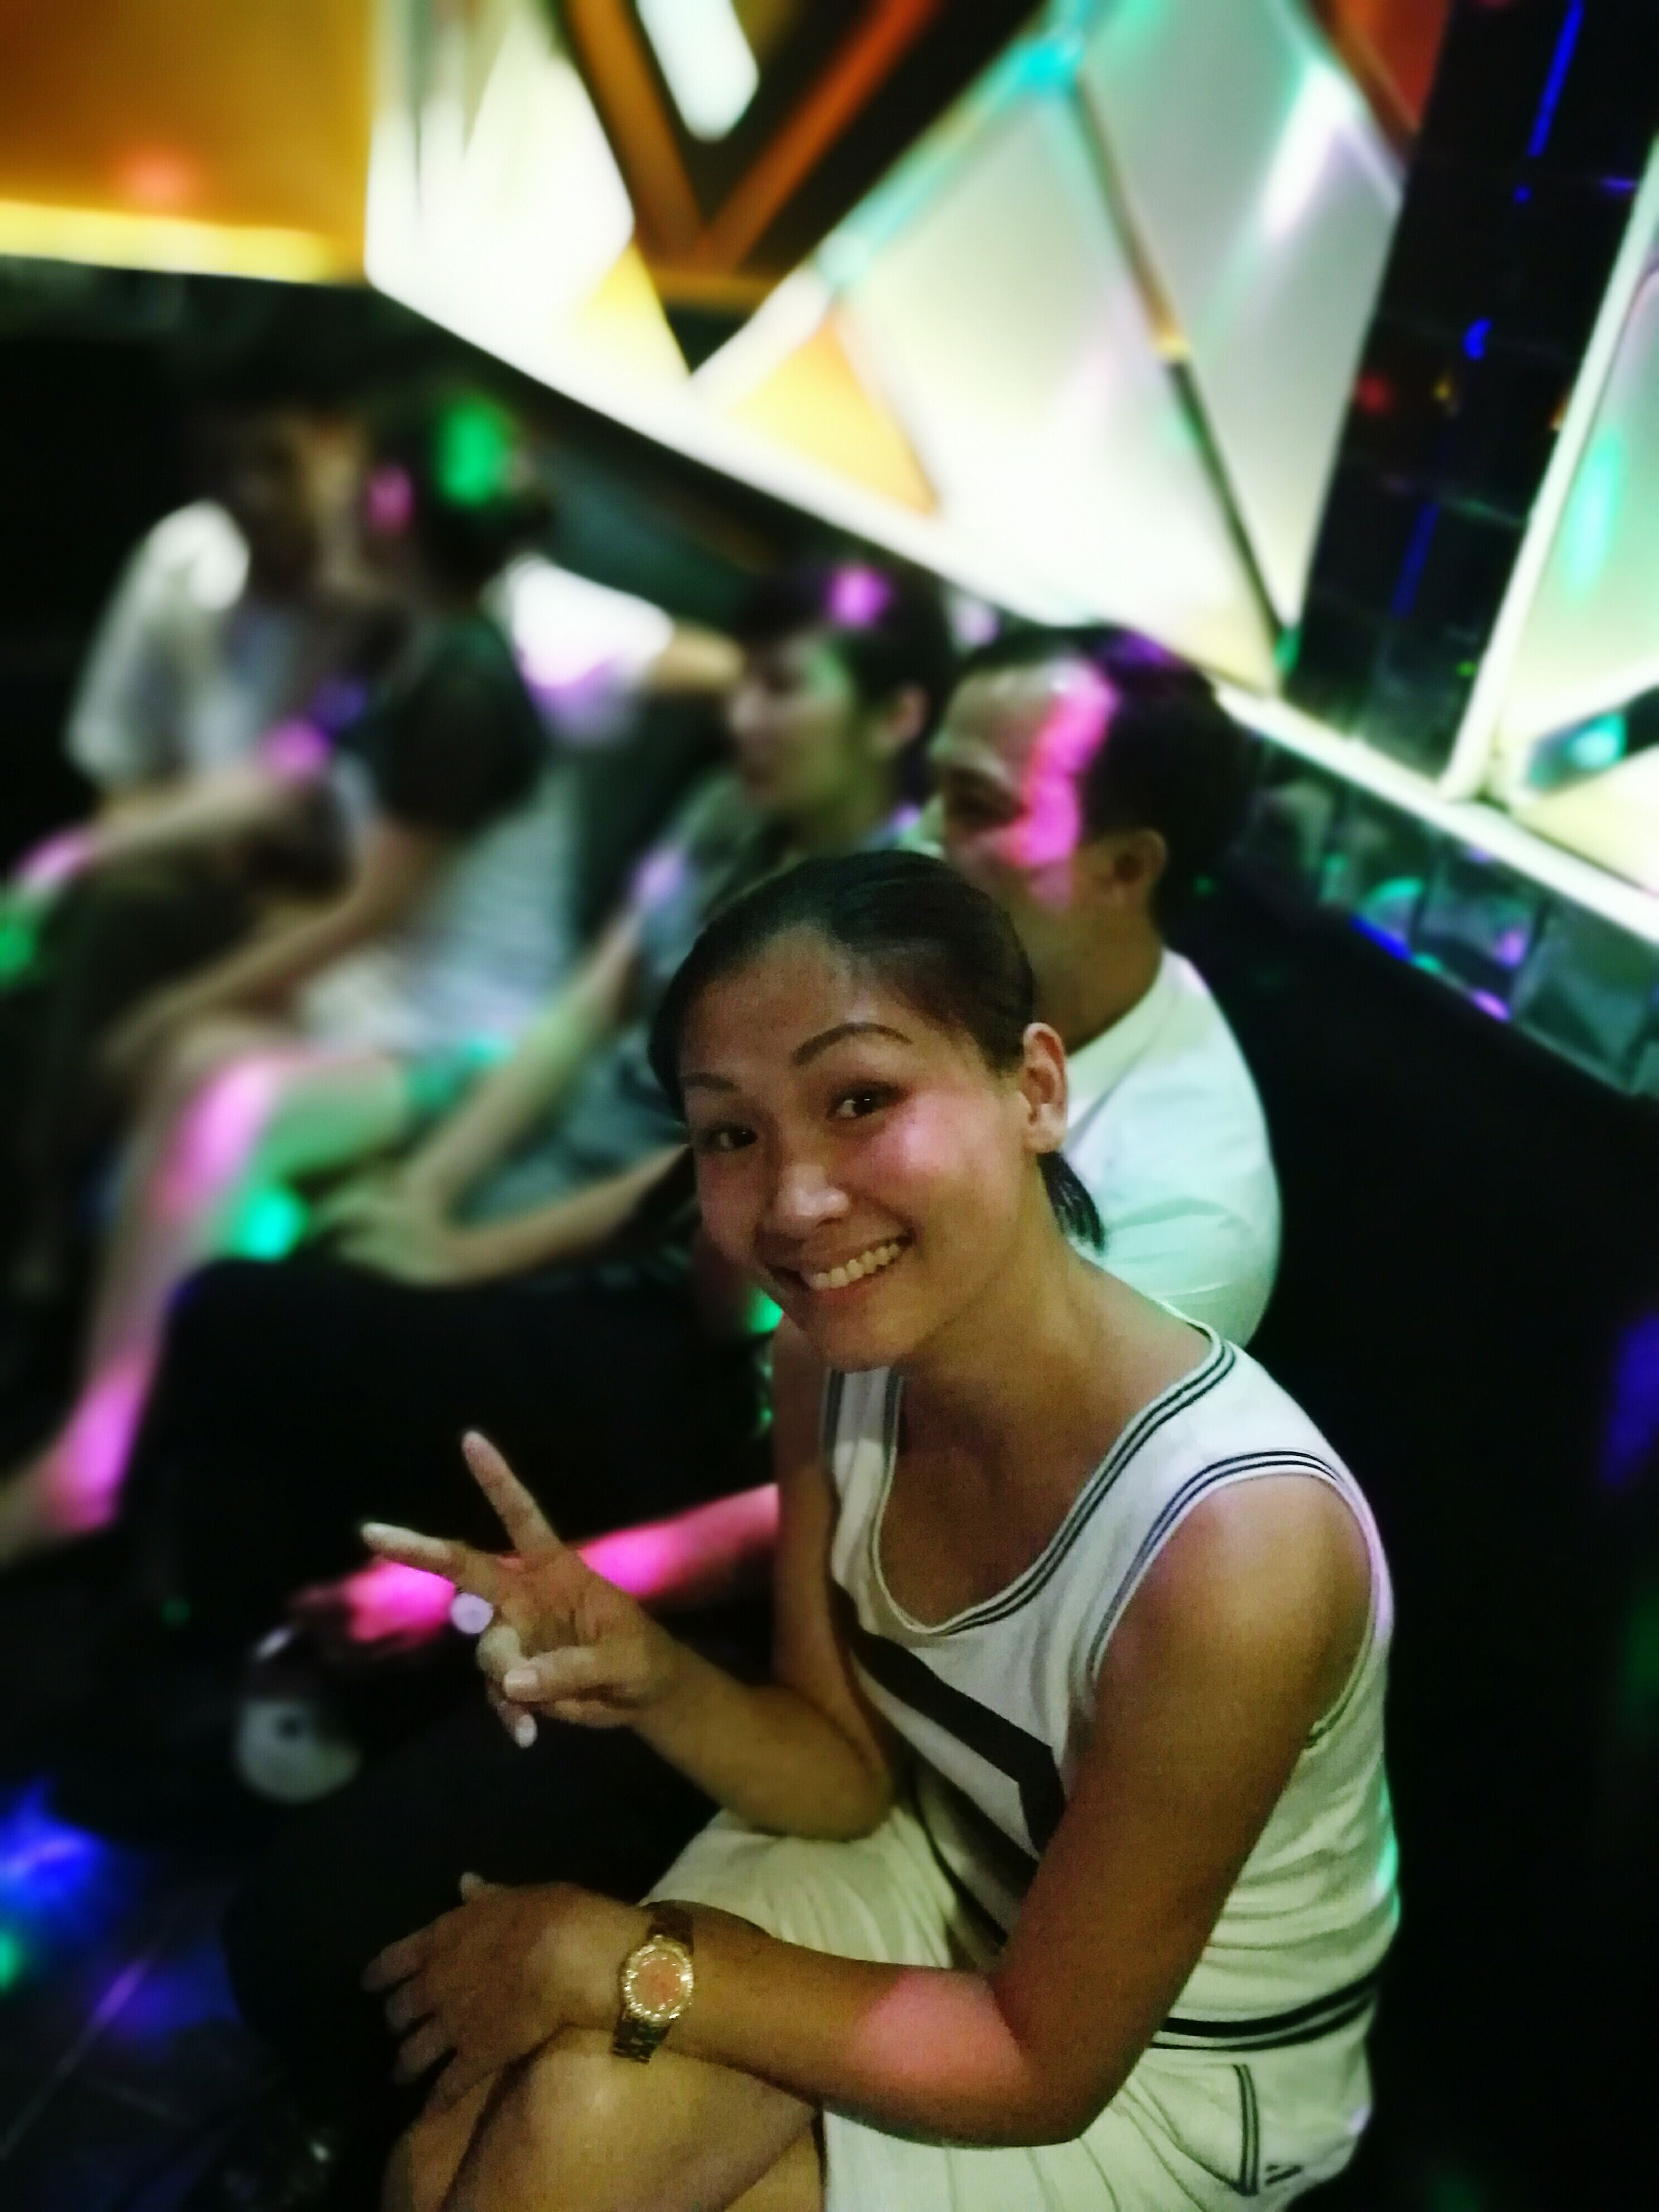 indoors, young adult, young women, leisure activity, front view, person, looking at camera, focus on foreground, casual clothing, multi colored, nightclub